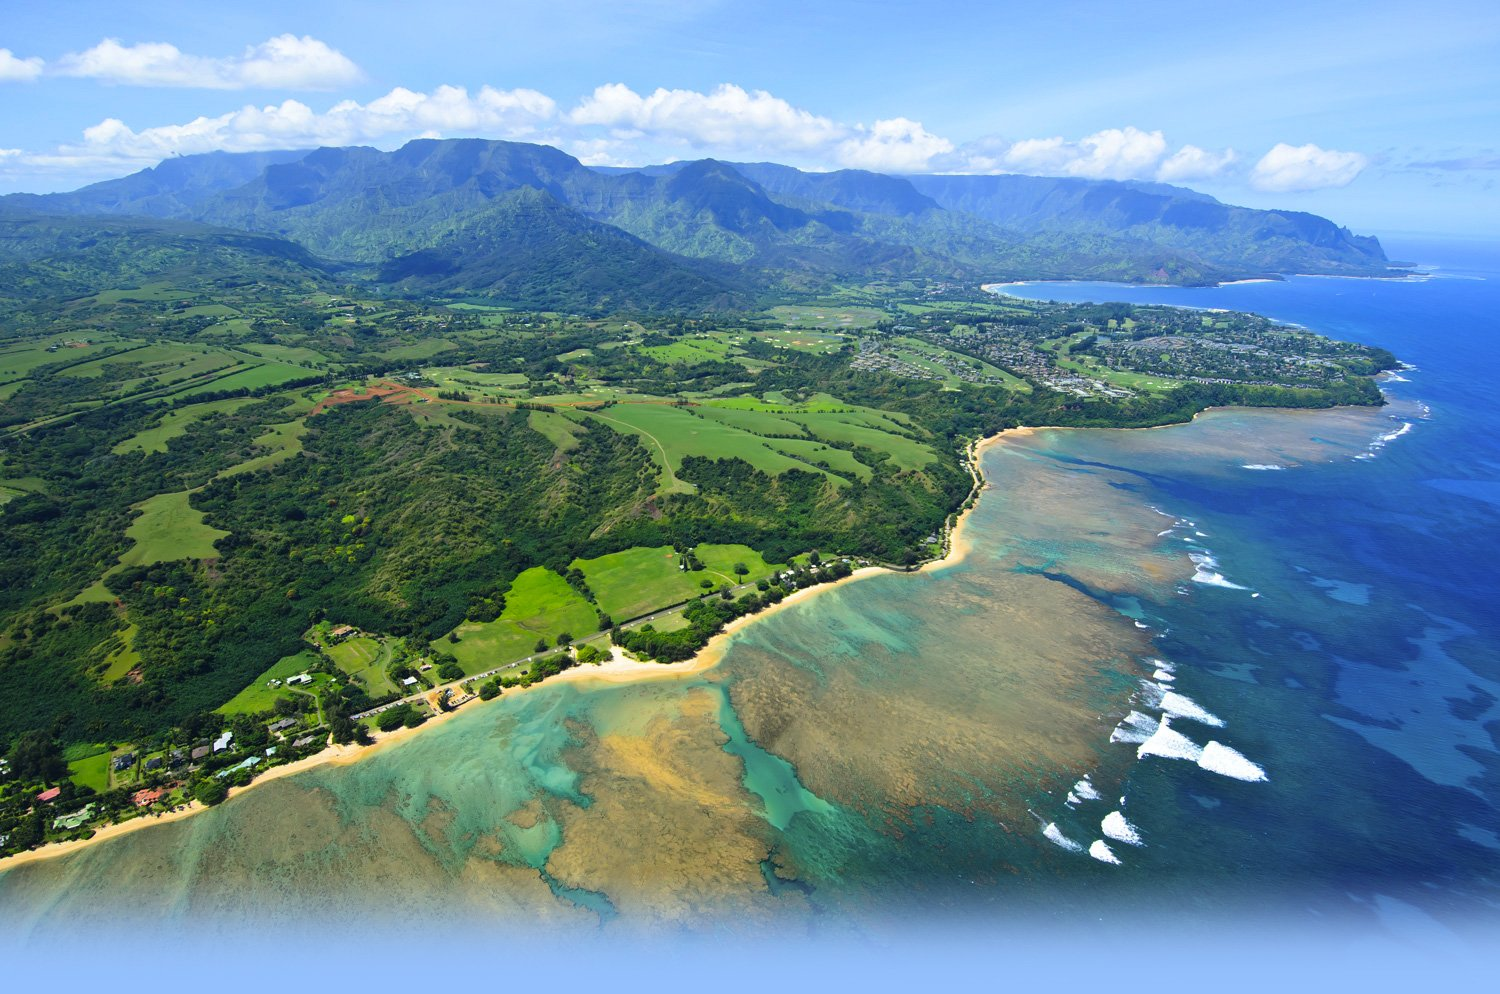 Waipa Kalo Festival, Kauai Events, Hawaii